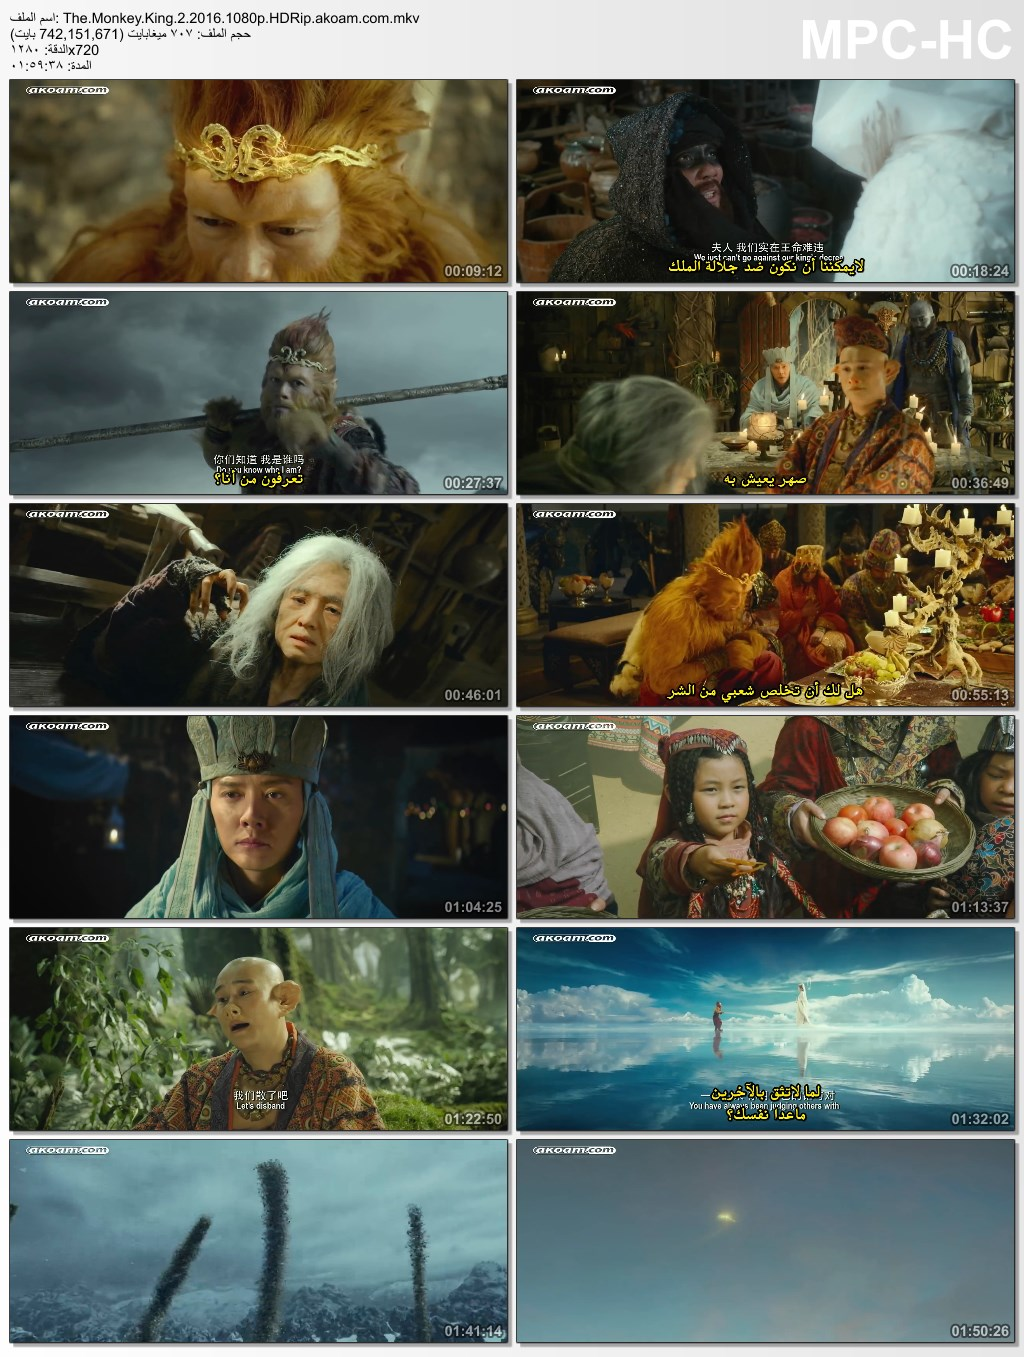 The Monkey King the Legend Begins 2016,The Monkey King the Legend Begins,الاكشن,المغامرات,الفانتازيا,الاسيوي